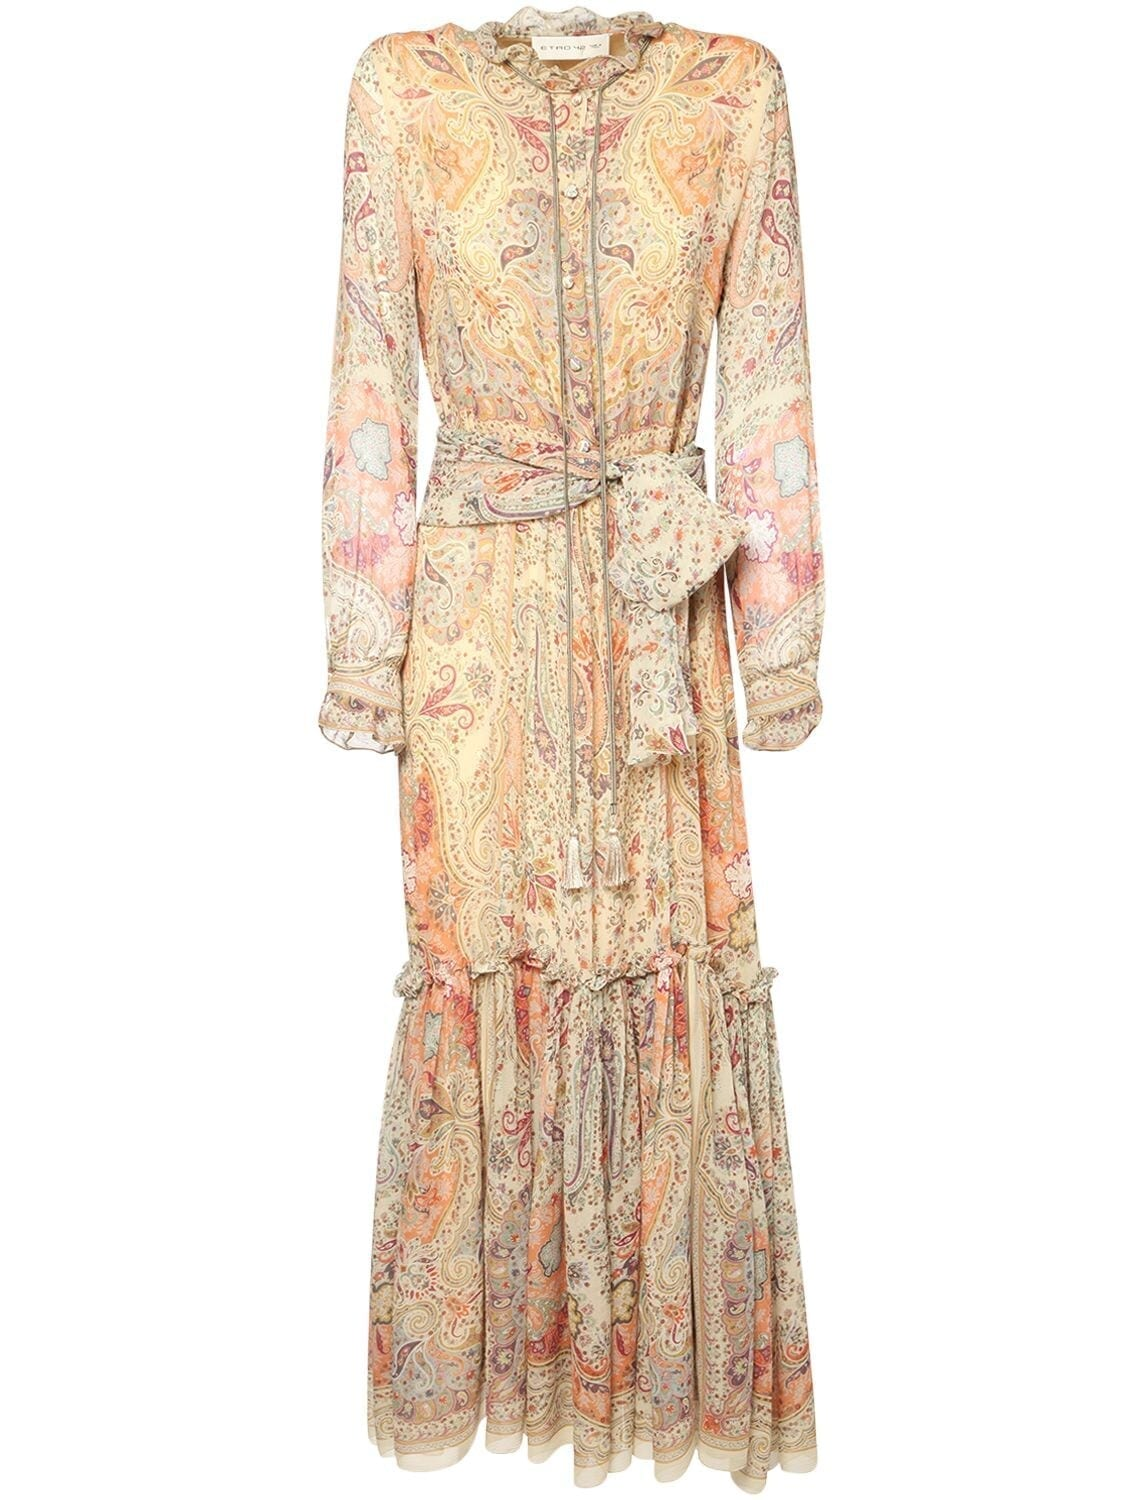 ETRO Printed Silk Georgette Long Dress